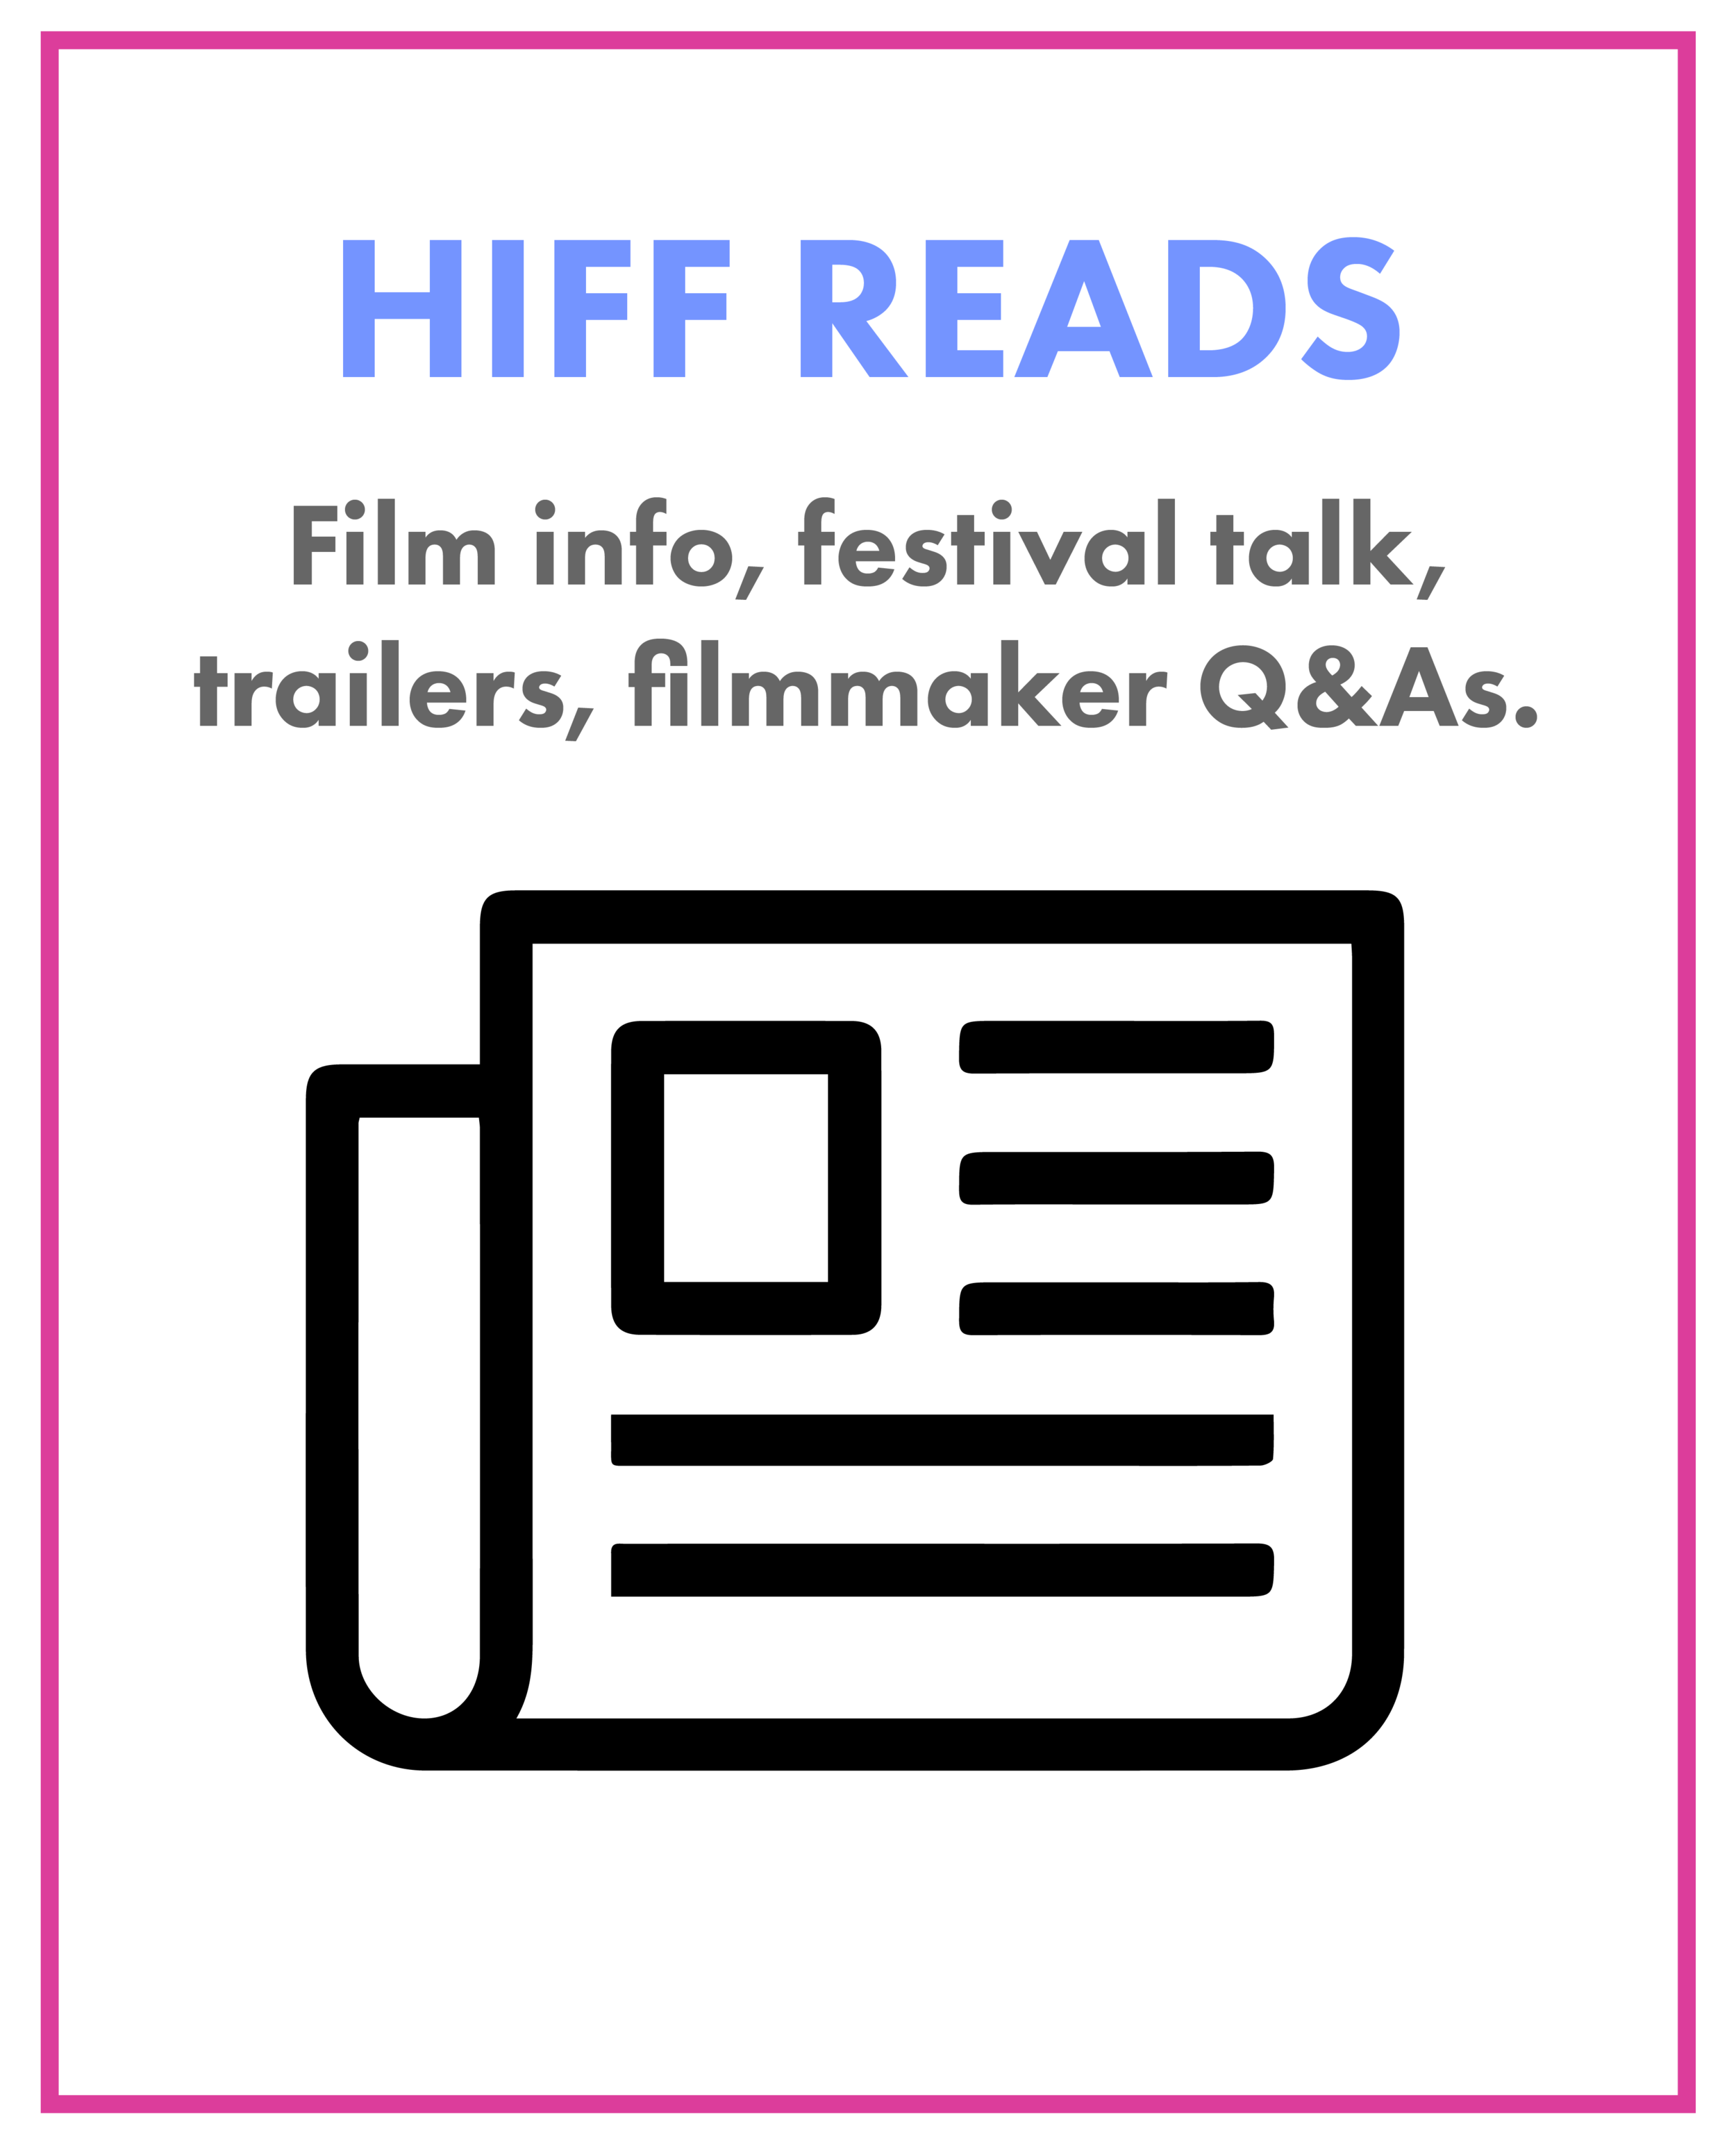 hiff reads.png